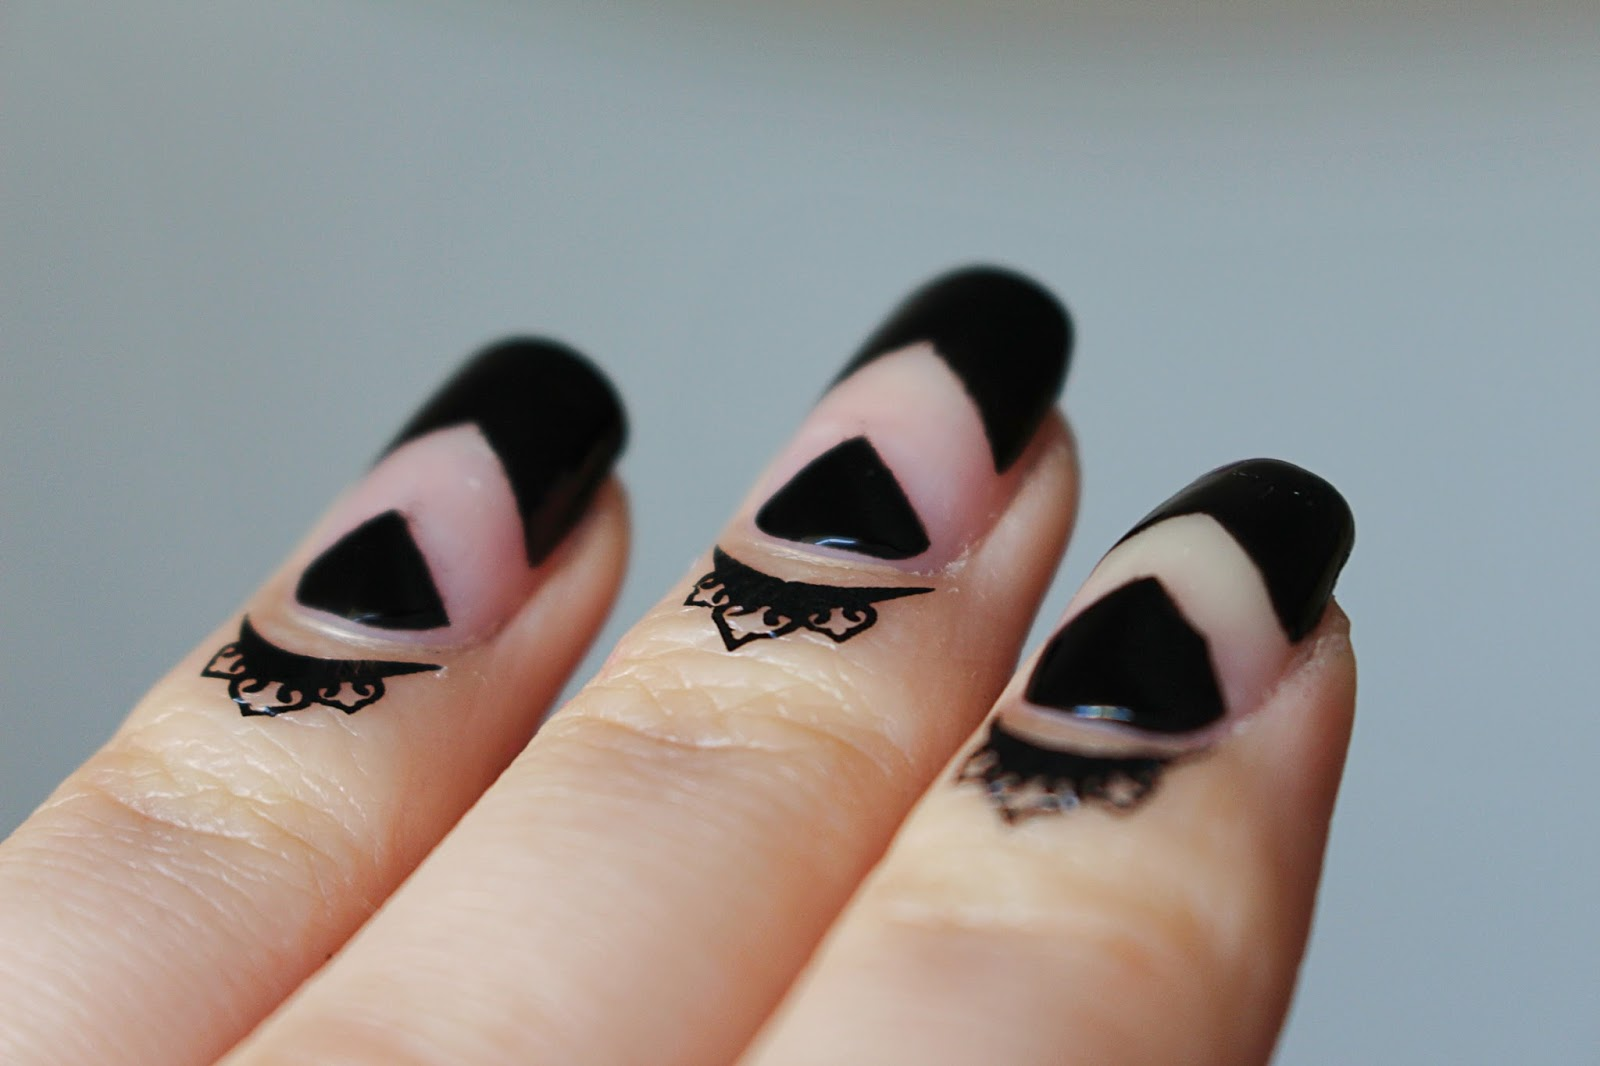 Cuticle Tattoo black nails gotic nails Nail Art Stickers Water Transfer Temporary Decals Lace Flower Patterns